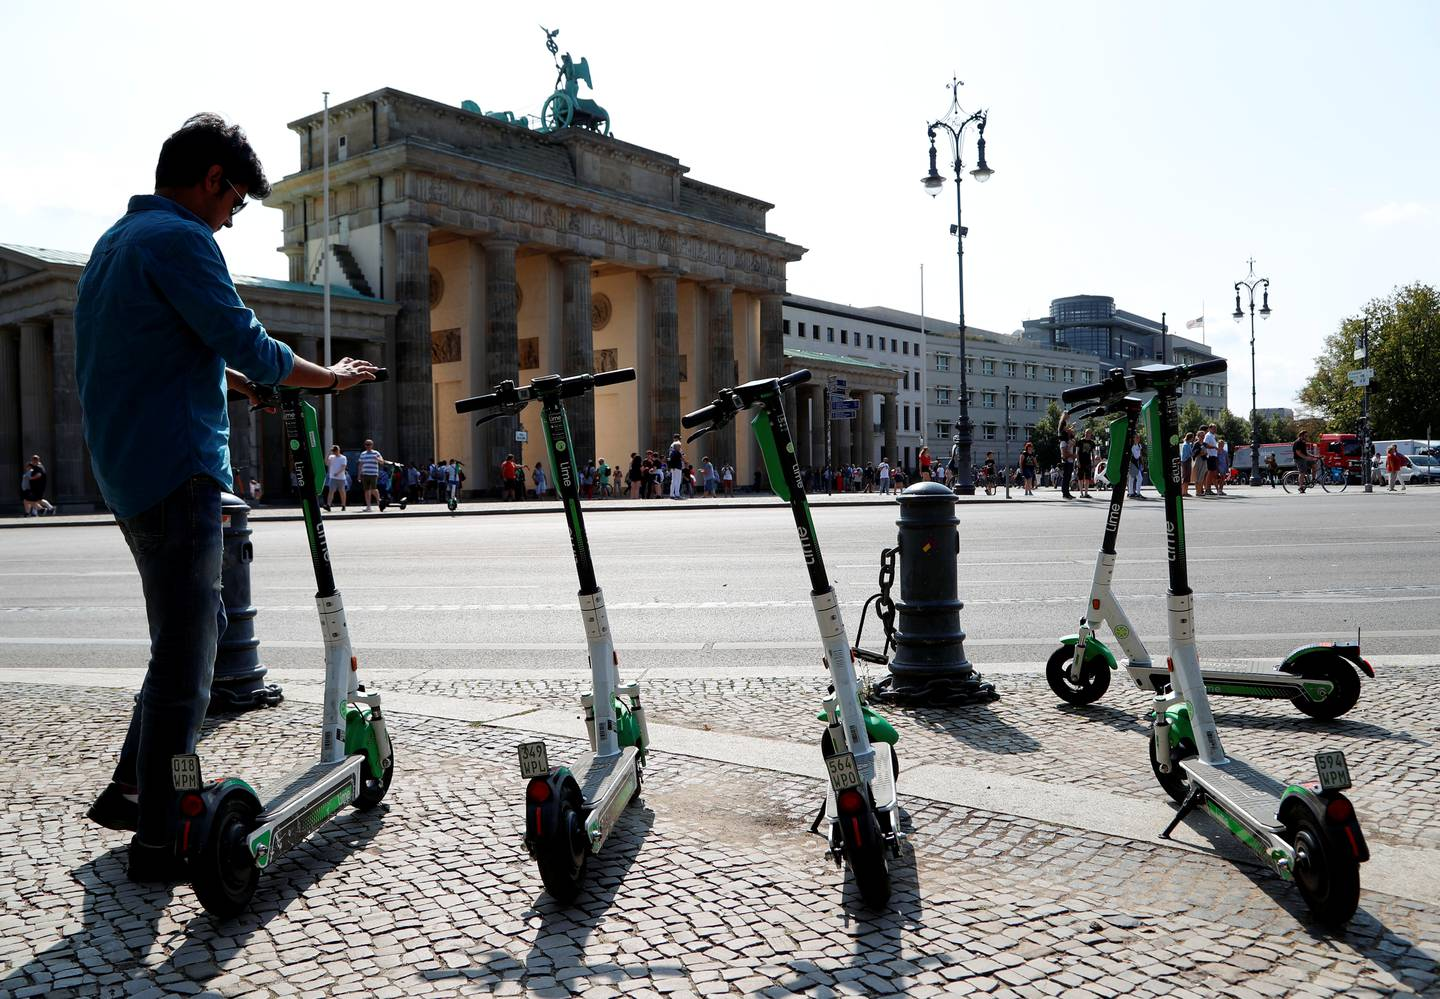 E-scooters of California-based bicycle service Lime are pictured by the Brandenburg Gate in Berlin, Germany, August 8, 2019. REUTERS/Fabrizio Bensch